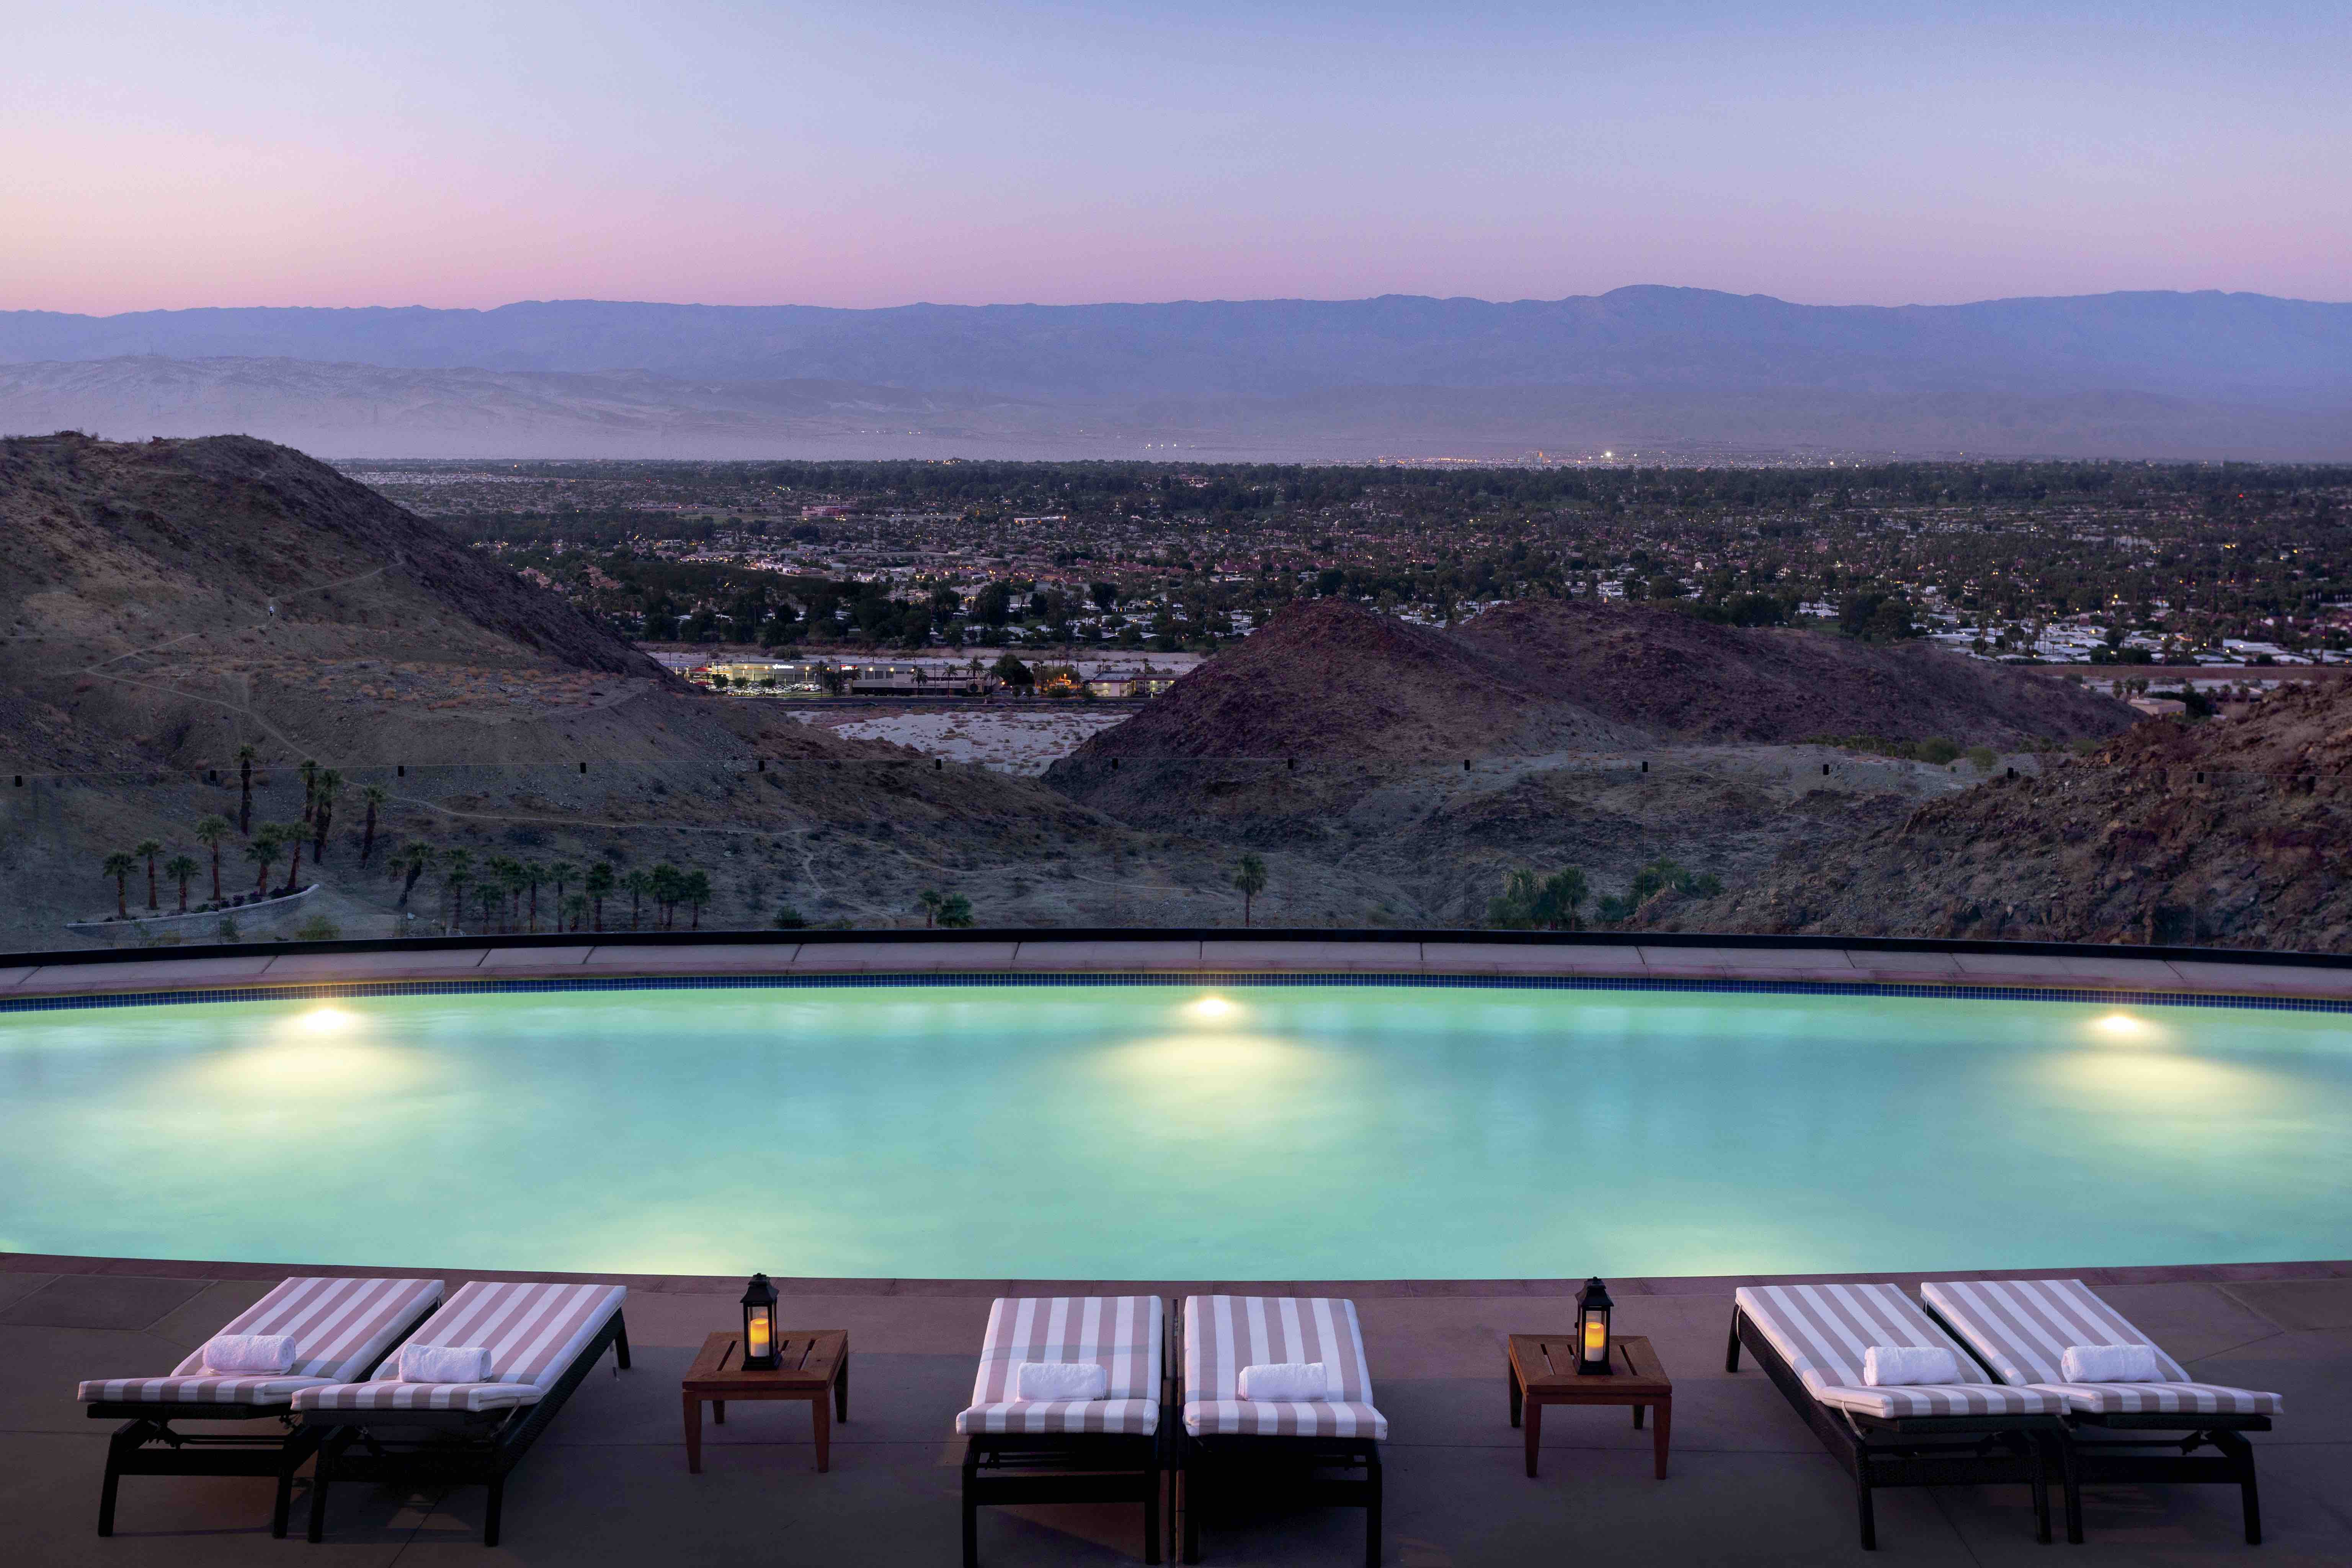 Indulging in Desert Luxury at the Ritz-Carlton Rancho Mirage